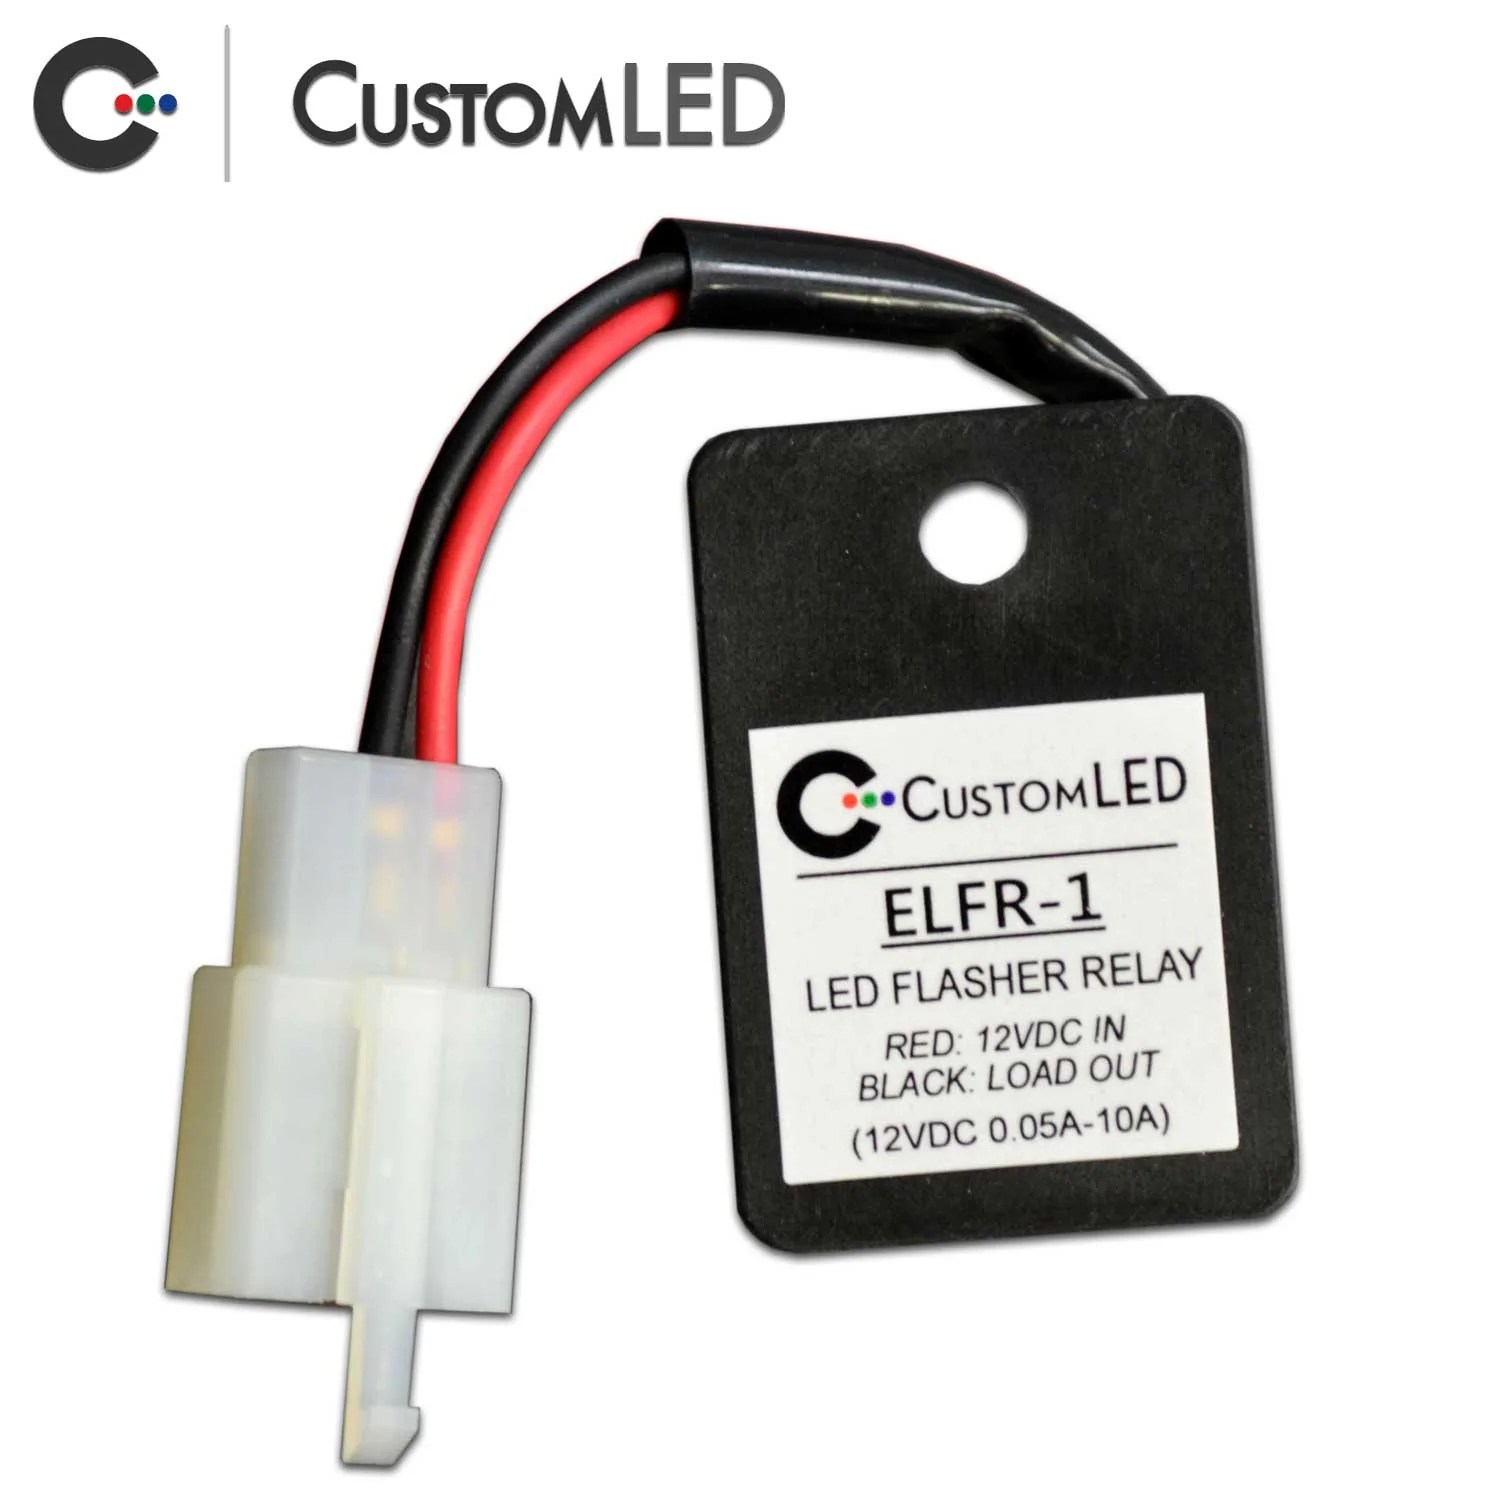 medium resolution of elfr 1 electronic led flasher relay with oem connector